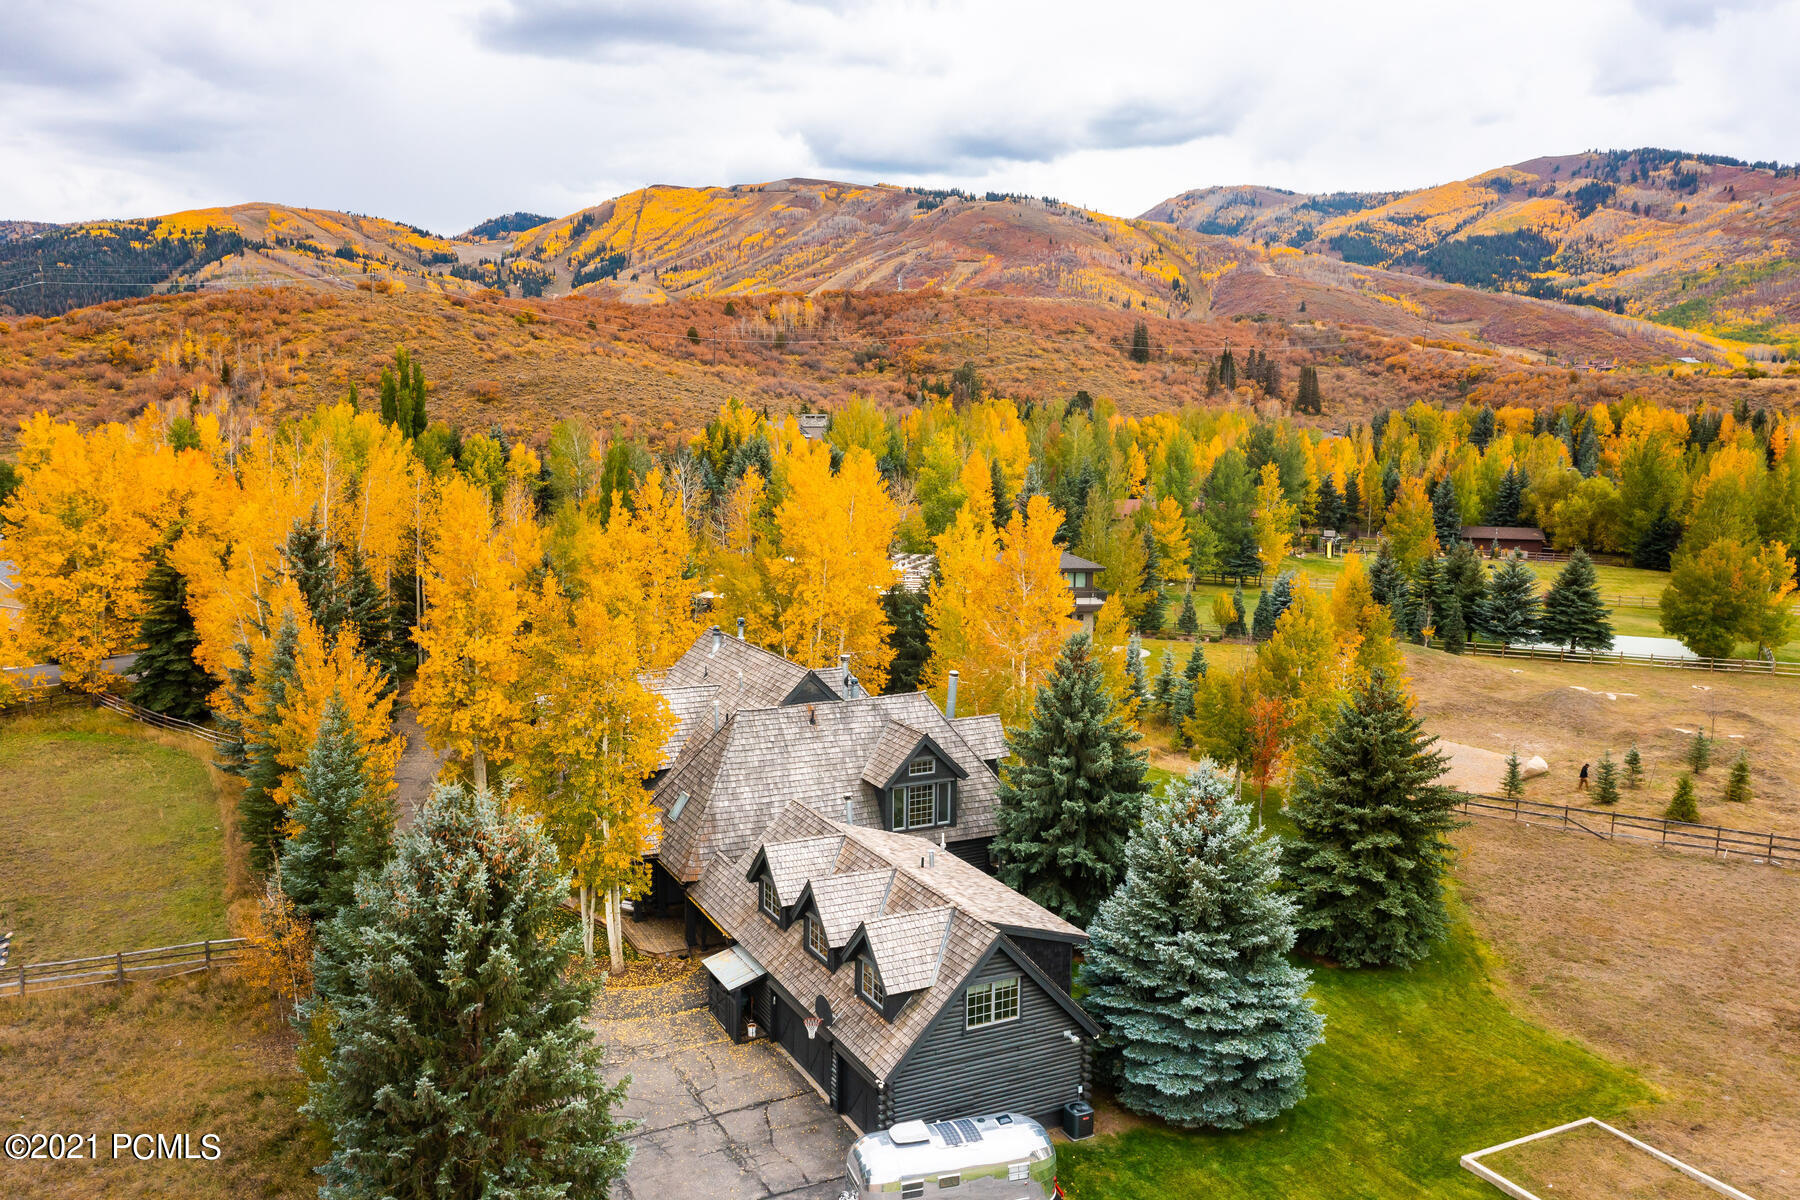 Aged pines and multi-colored aspens adorn the private drive leading to this gorgeous Scandinavian style ranchette on 1.64 acres in the heart of Park Meadows remodeled in 2020 with panoramic views of Park City Mountain Resort. The highly sought-after equestrian zoned lot is walking distance from Park City schools, minutes from the slopes, and a short stroll into town while still feeling like you are miles away in the countryside. A crisp, clean palette compliments the warm hardwood floors, ceiling beams, and stone fireplaces highlighted by large windows and custom lighting. Two oversized family rooms on the main level are adjacent to the large chef's kitchen and dining area, all centered with wood-burning fireplaces. Enjoy the ultimate in all seasons relaxation on your wrap-around porch which has several access points for year-round alfresco dining, lounging with friends, or soaking in your recessed hot tub. The first-floor wing enjoys its own entrance with three bedrooms, two bathrooms, and laundry making it ideal for guests. The grand master suite features a spacious spa bathroom with a soaking tub, steam shower, and heated floors, a den with a gas fireplace and balcony with mountain views, and a large walk-in closet with laundry. A separate guest house has a bedroom and bathroom, a living area, a newly updated kitchen, and is surrounded by lush landscaping that maximizes its dramatic setting. The ultimate combination of location, amenities, and views from this peaceful oasis is a rare opportunity in Park City that will delight family and friends for generations.